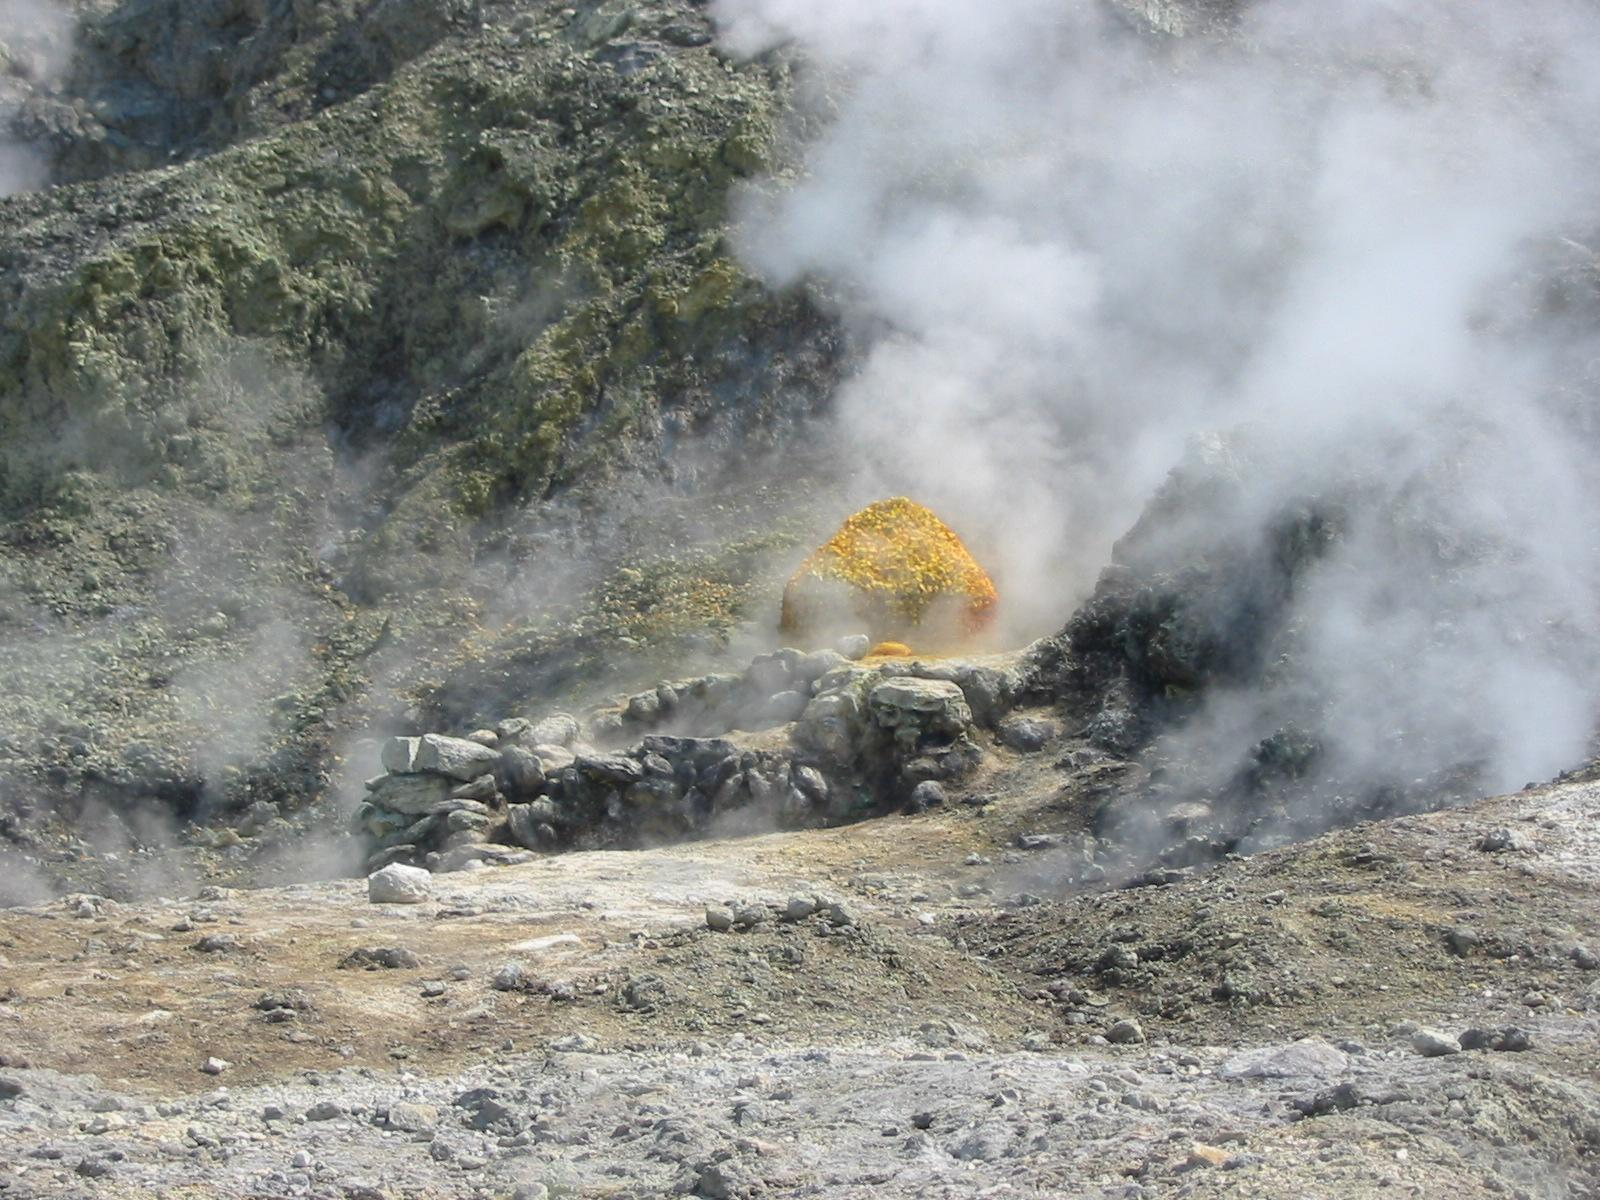 Campi Flegrei Volcano Likely To Erupt, Research Shows